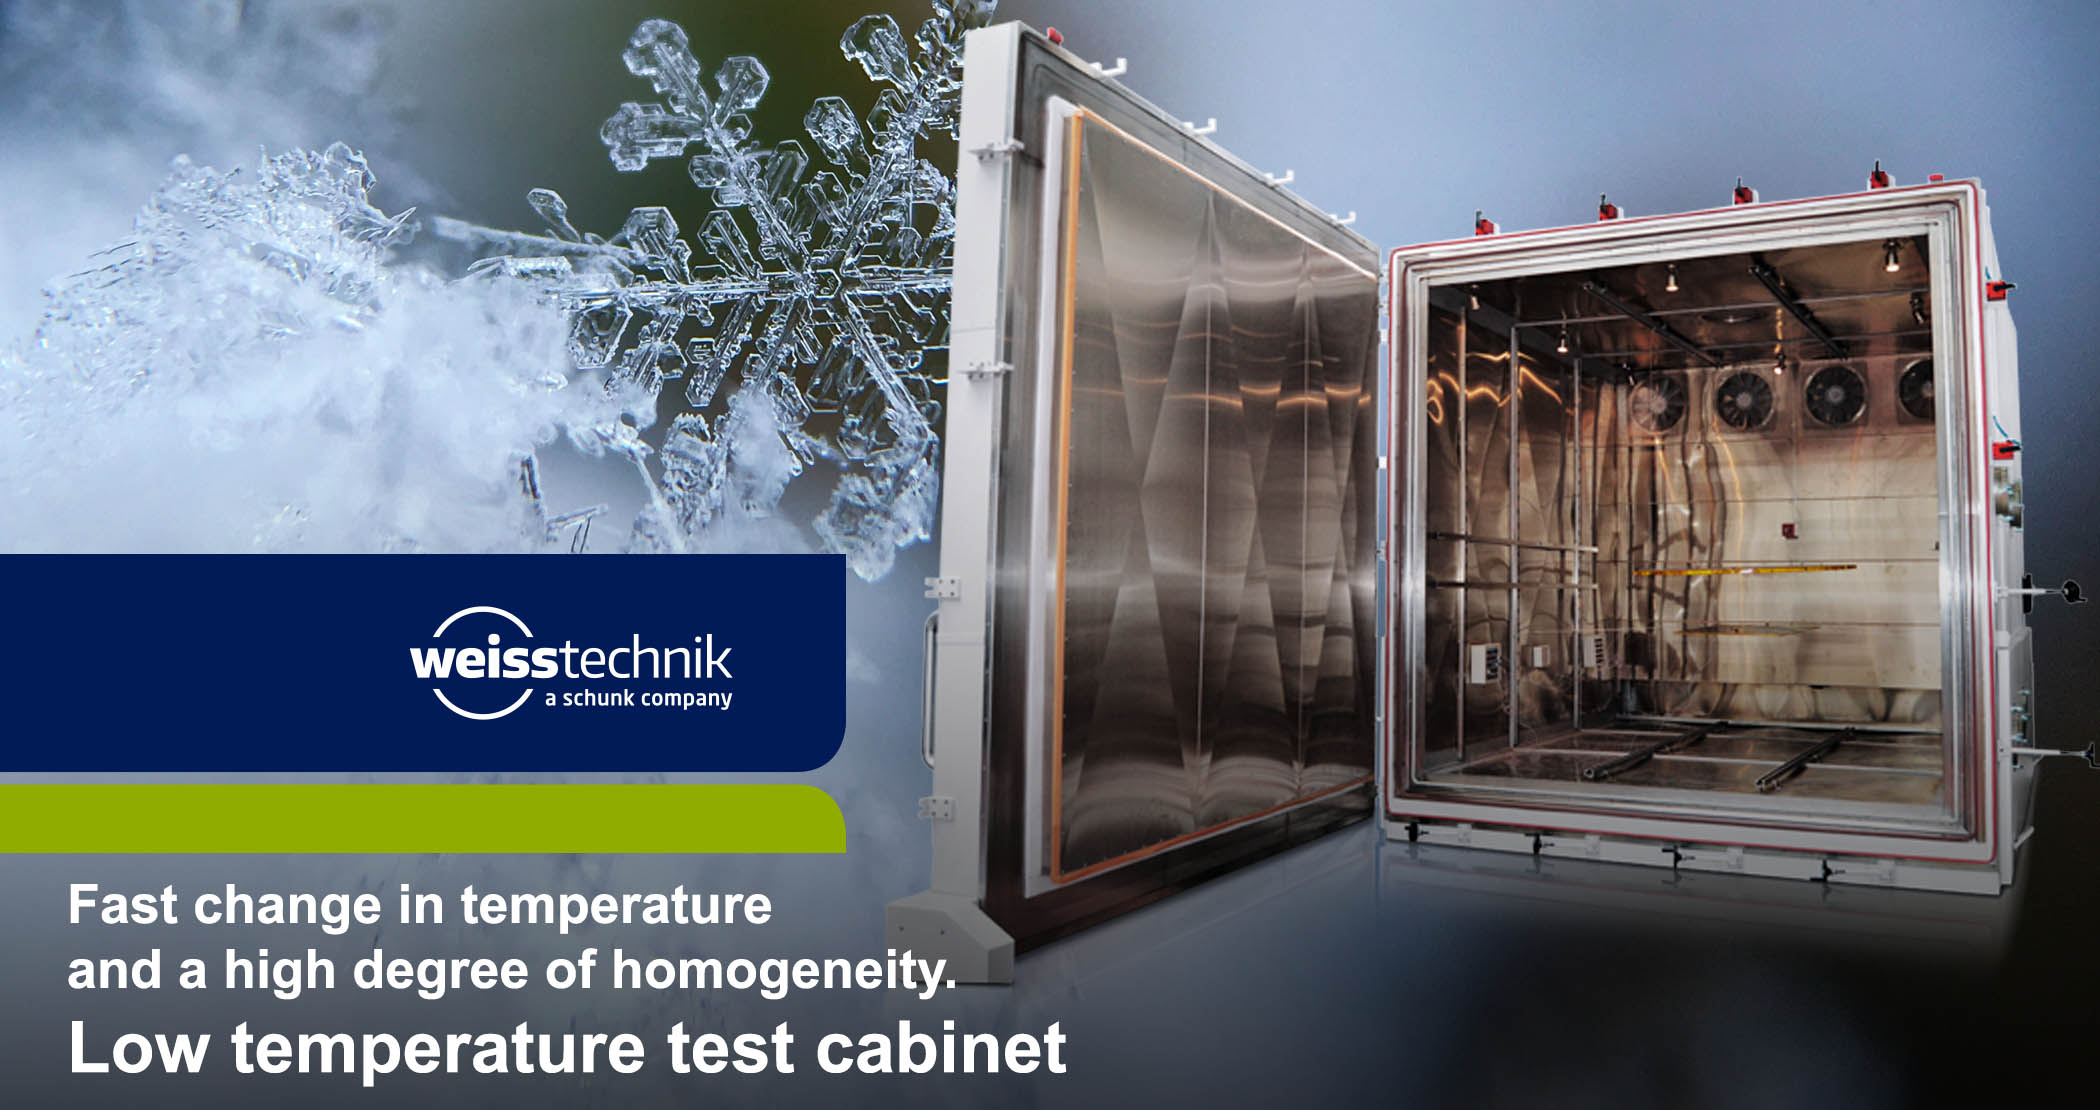 Low temperature test cabinet